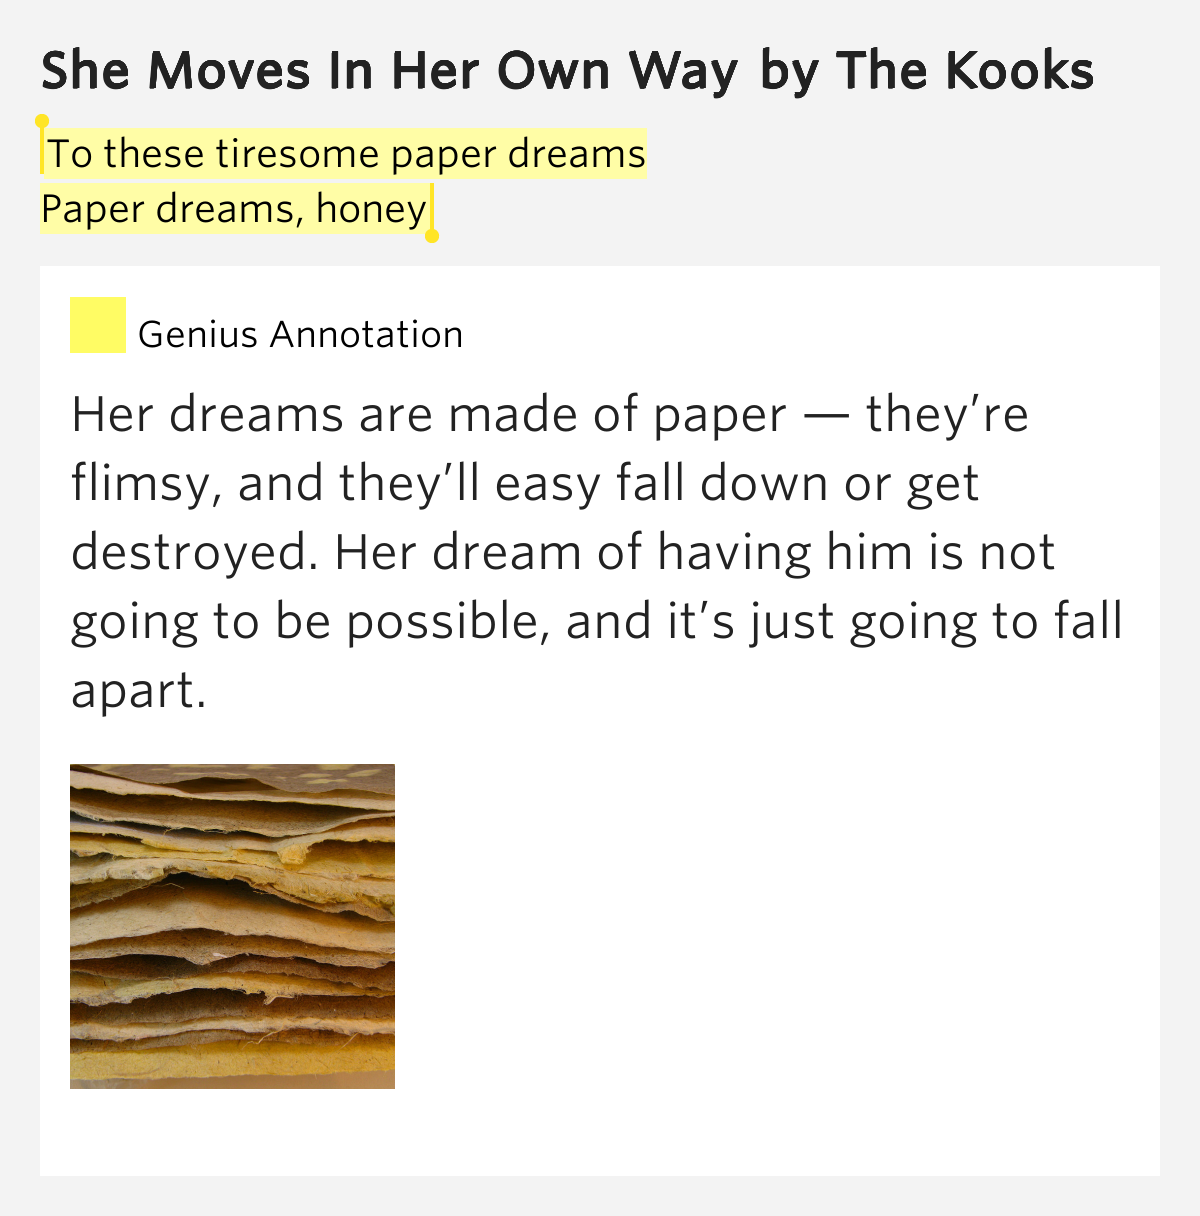 To These Tiresome Paper Dreams / Paper Dreams, Honey